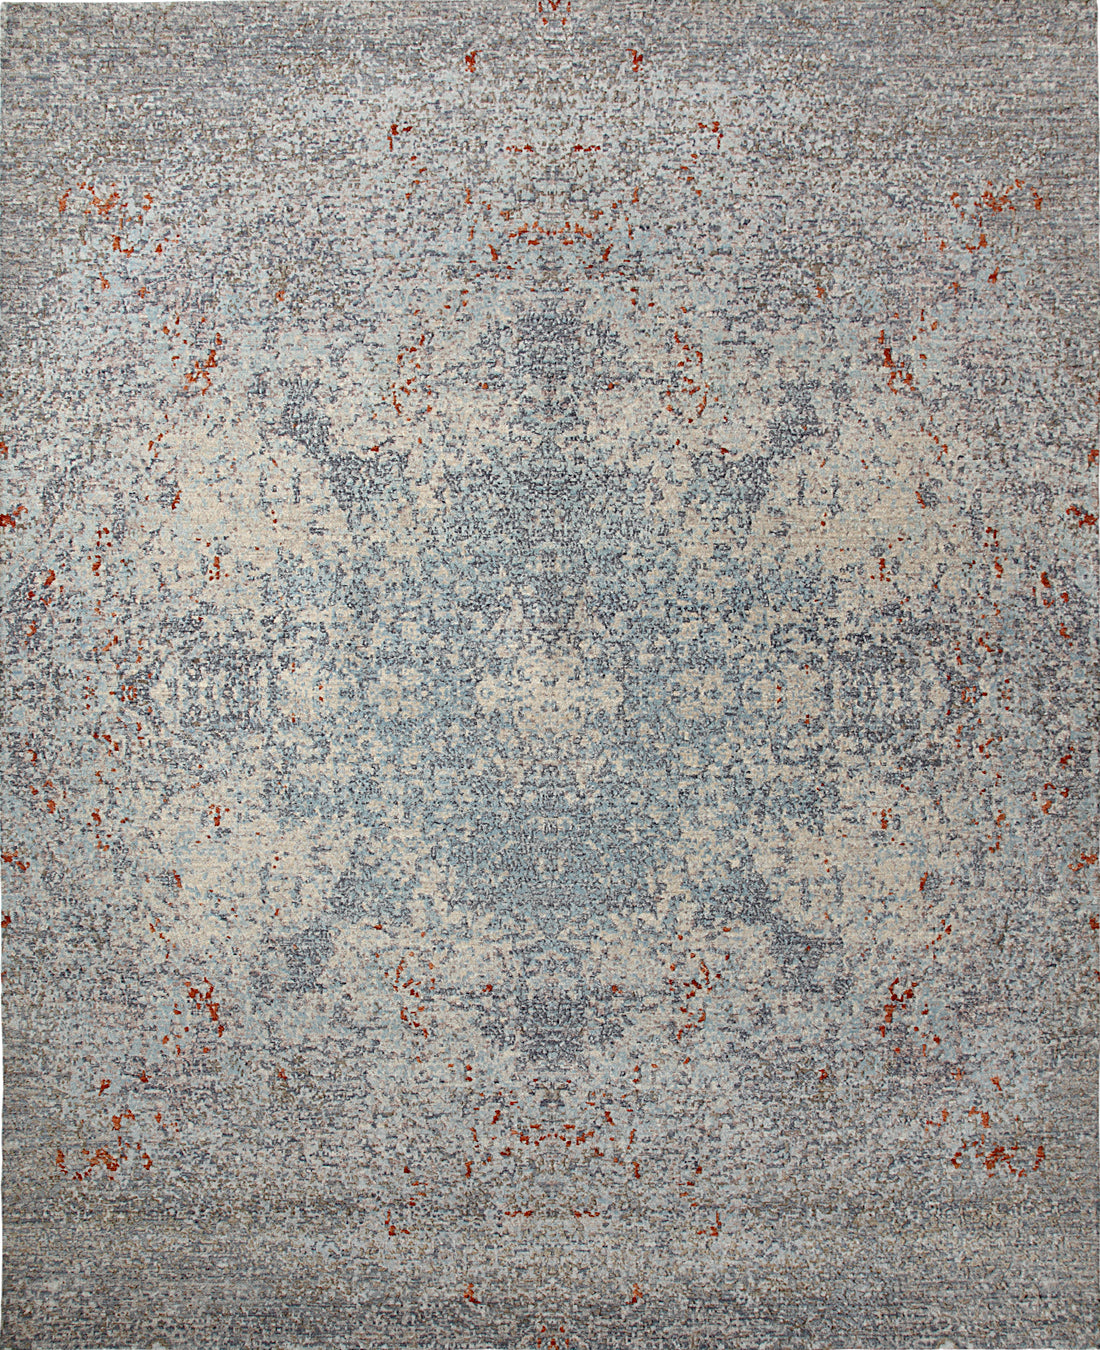 Solo Rugs Galaxy M8062-93 Gray Area Rug main image